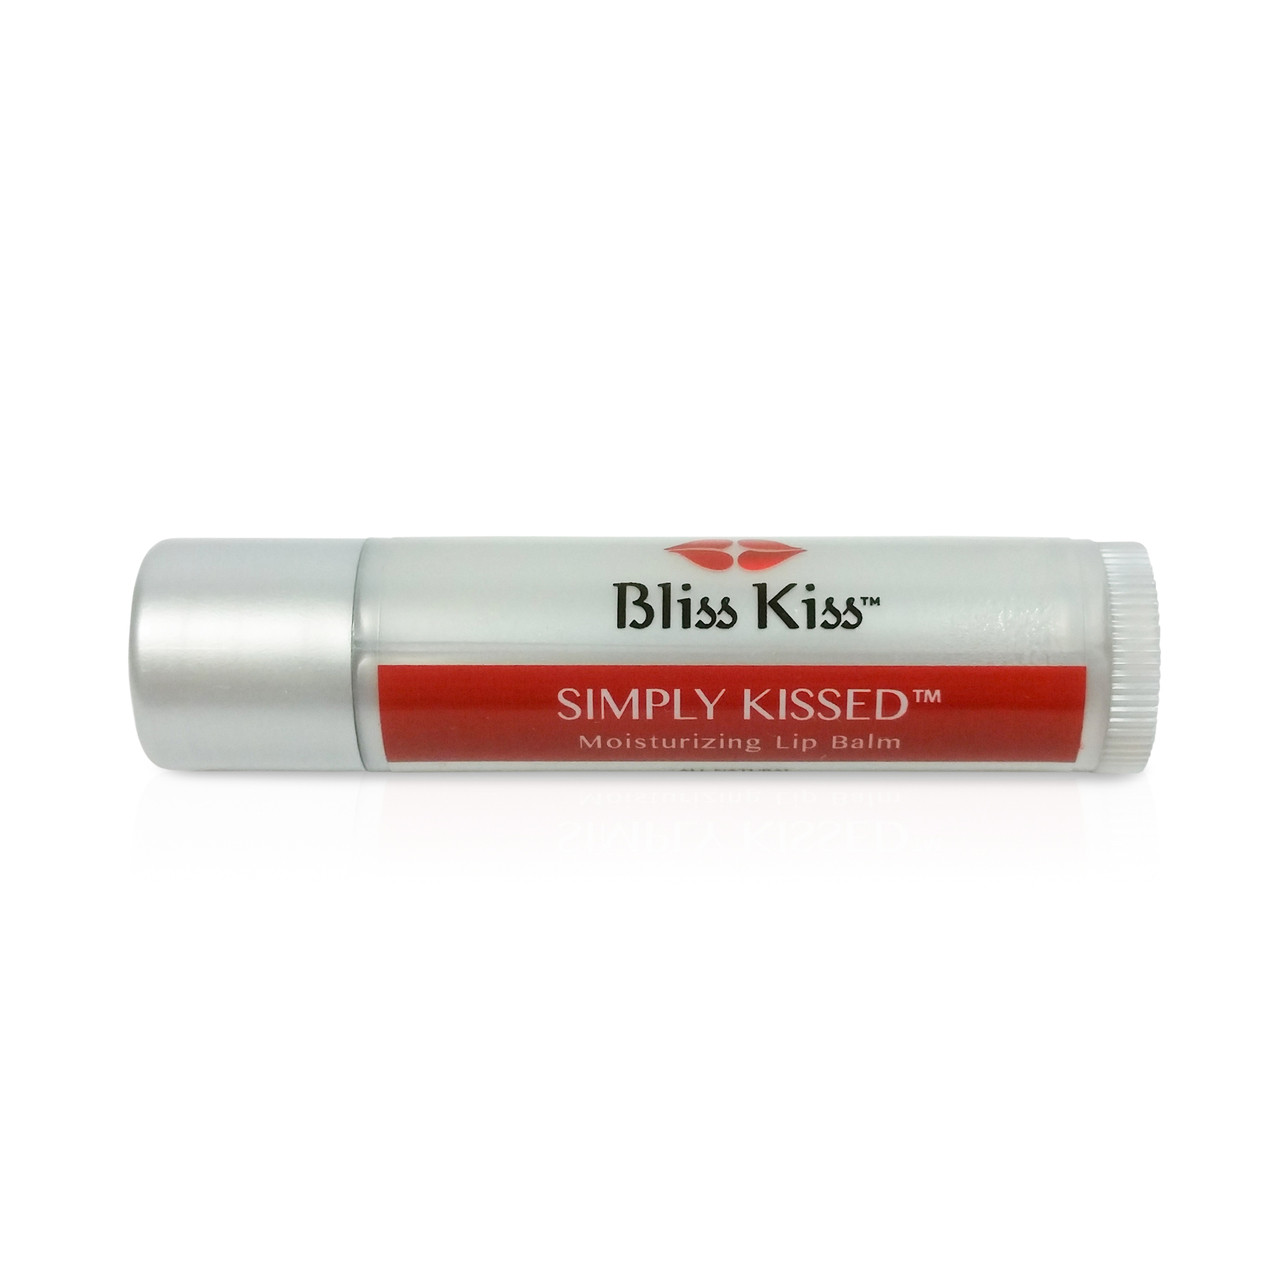 Treat your lips to silky smooth moisture. This quick-absorb lip balm keeps your lips silky soft all day long (and all night strong). Your lips will always be ready to be Simply Kissed™. No additives. No preservatives. No colorants. No kidding.